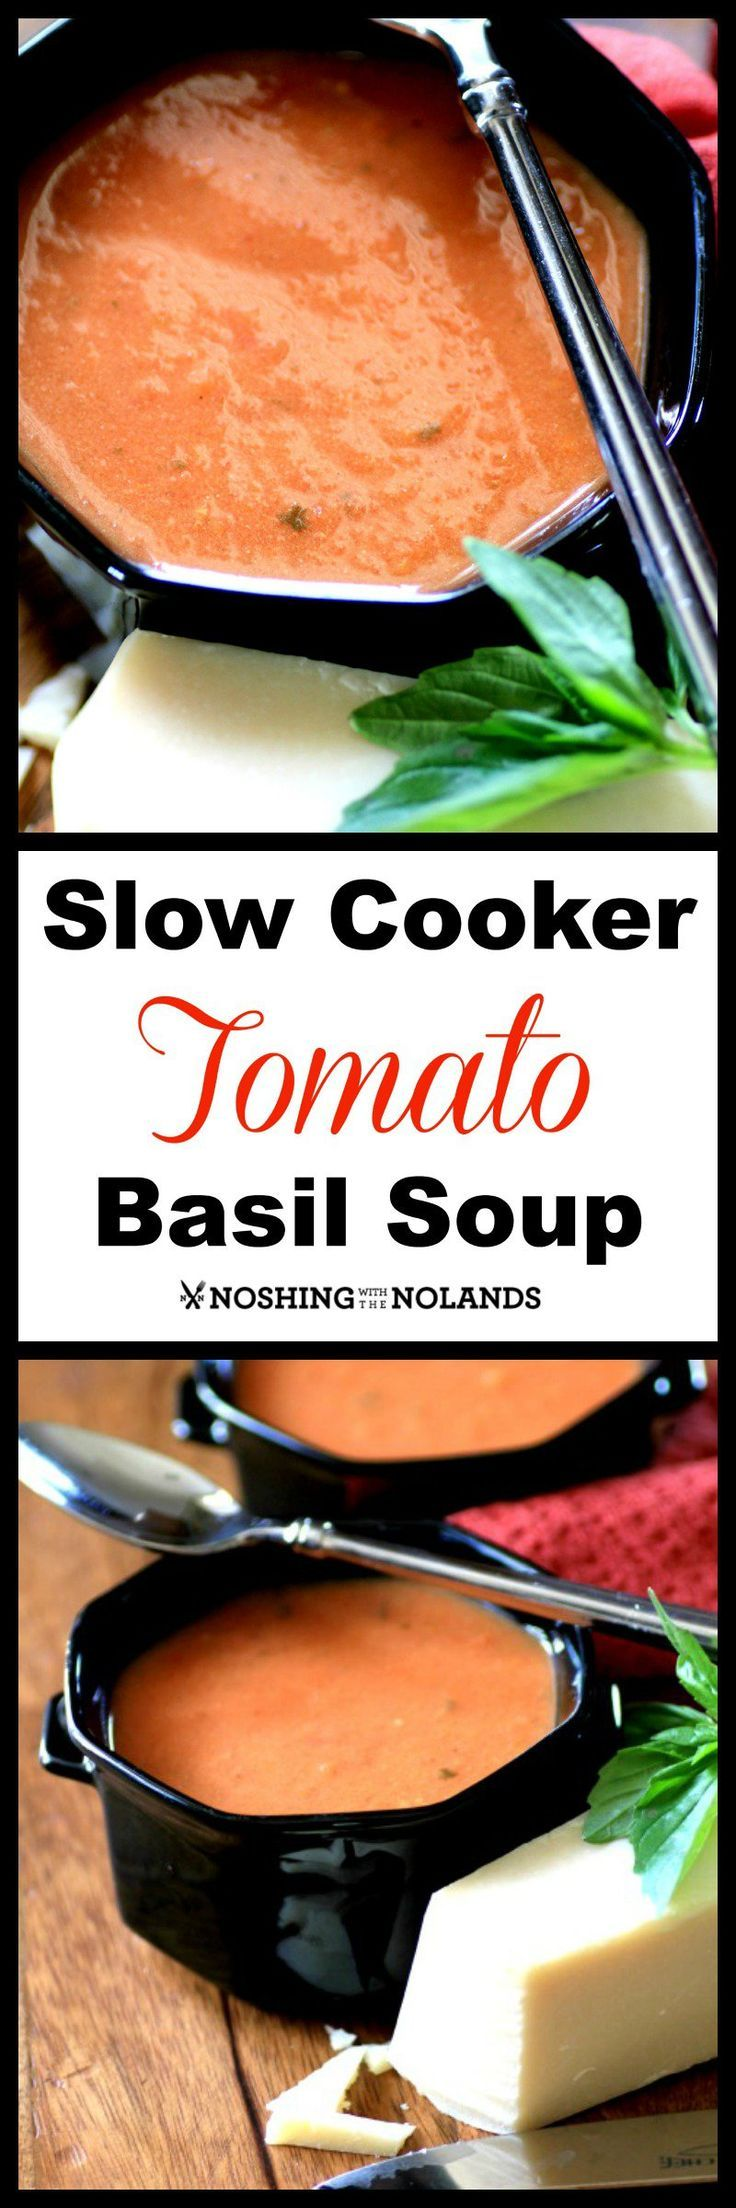 MWM Slow Cooker Tomato Basil Soup by Noshing With The Nolands is a ...